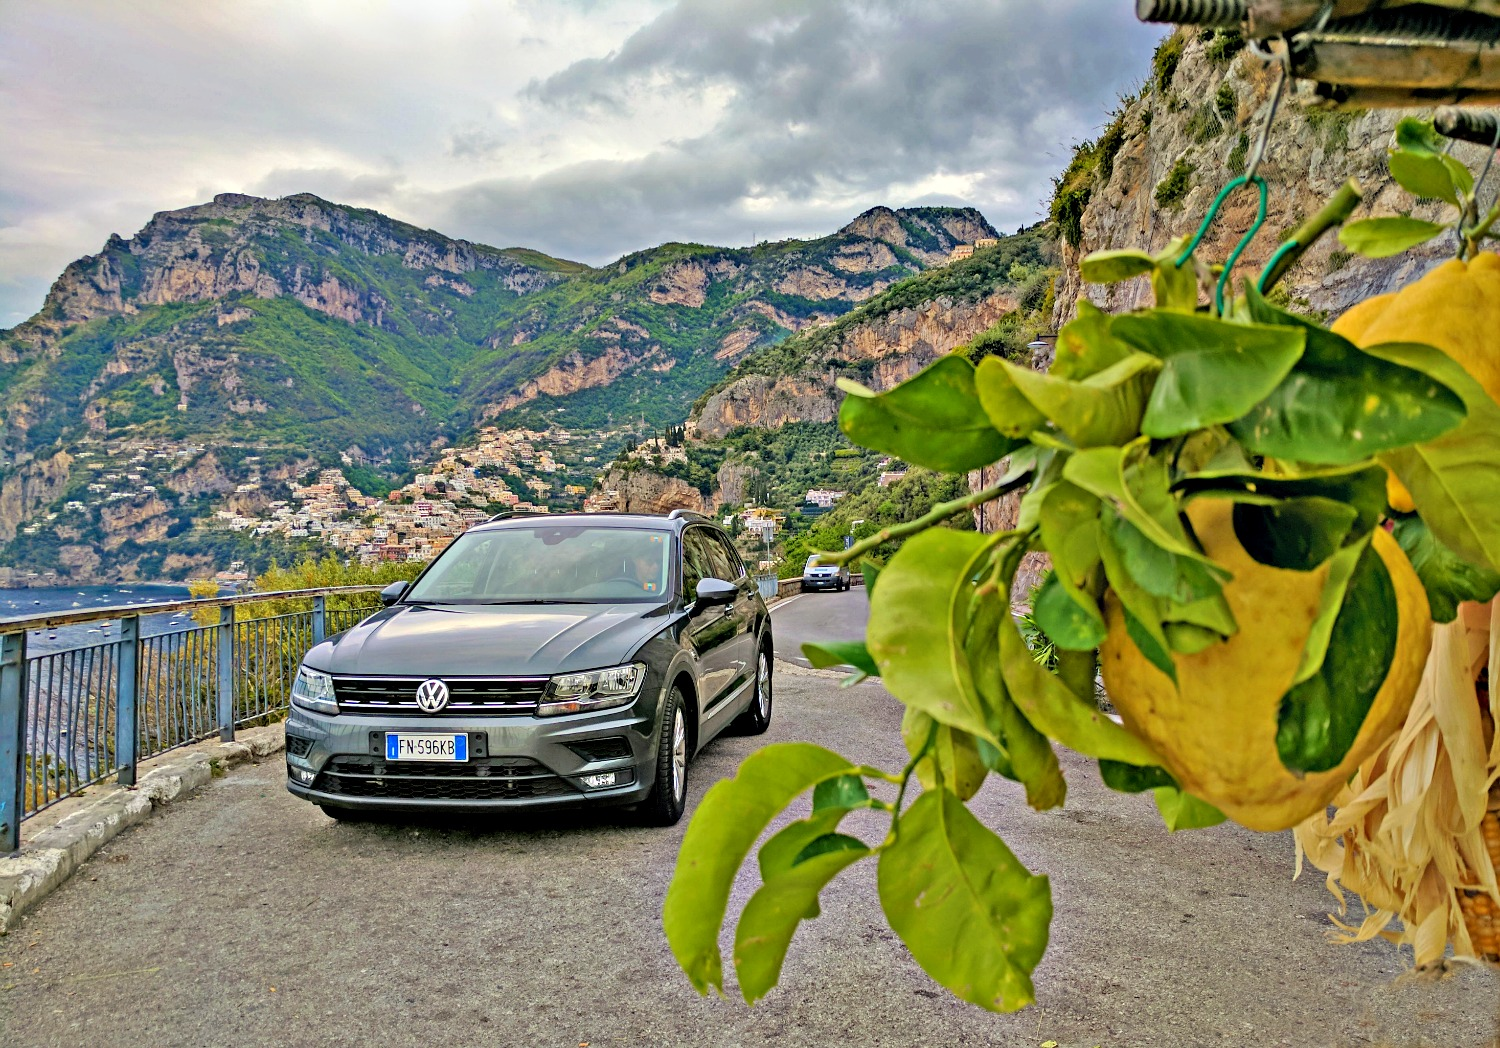 Our rented car along Amalfi Coast.